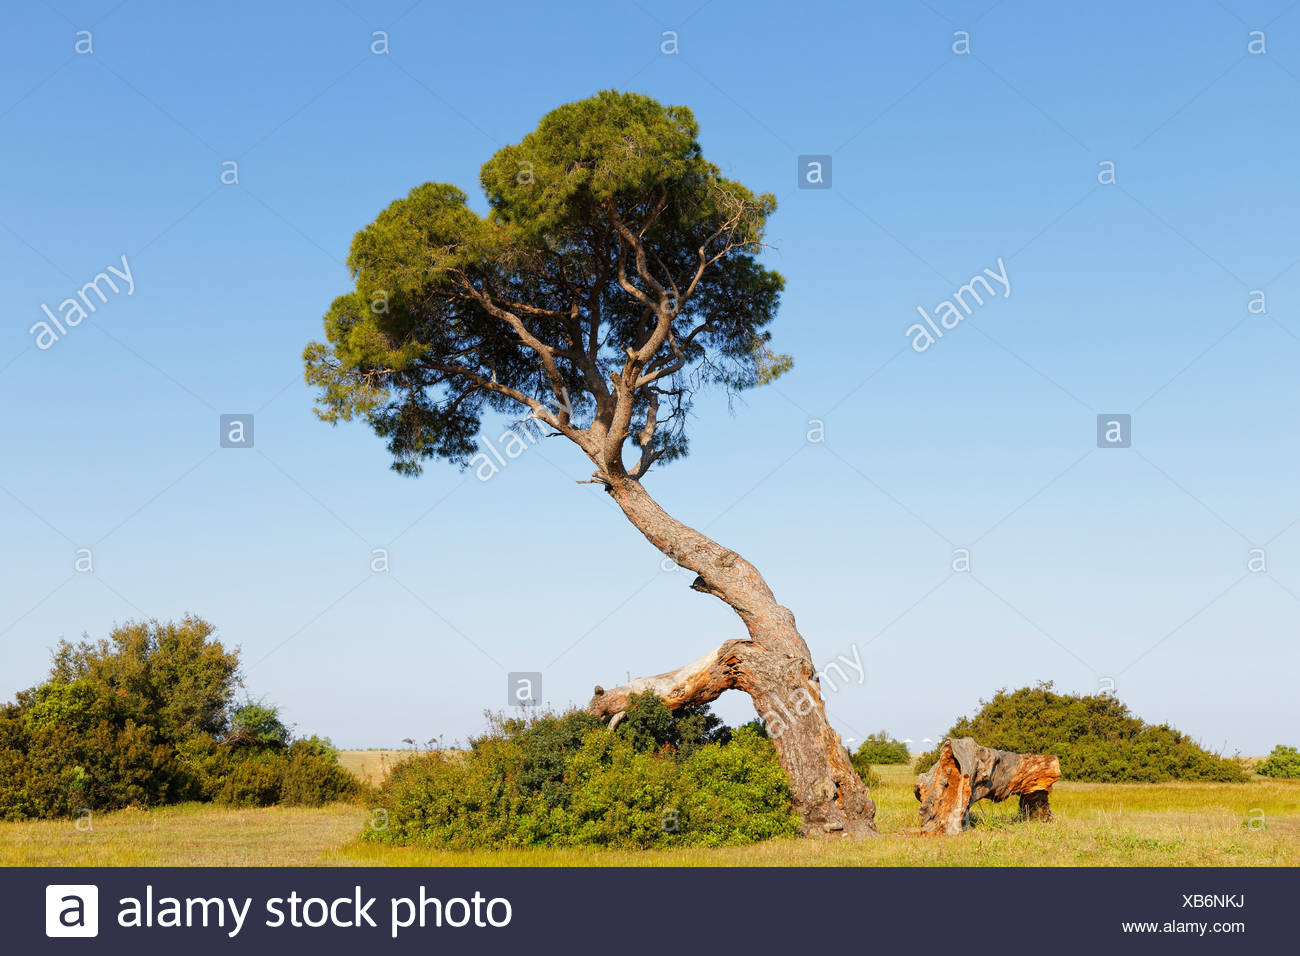 Pine tree on the beach of Olympos, Olimpos Beydağları National Park, Çıralı, Lycia, Province of Antalya, Turkey - Stock Image